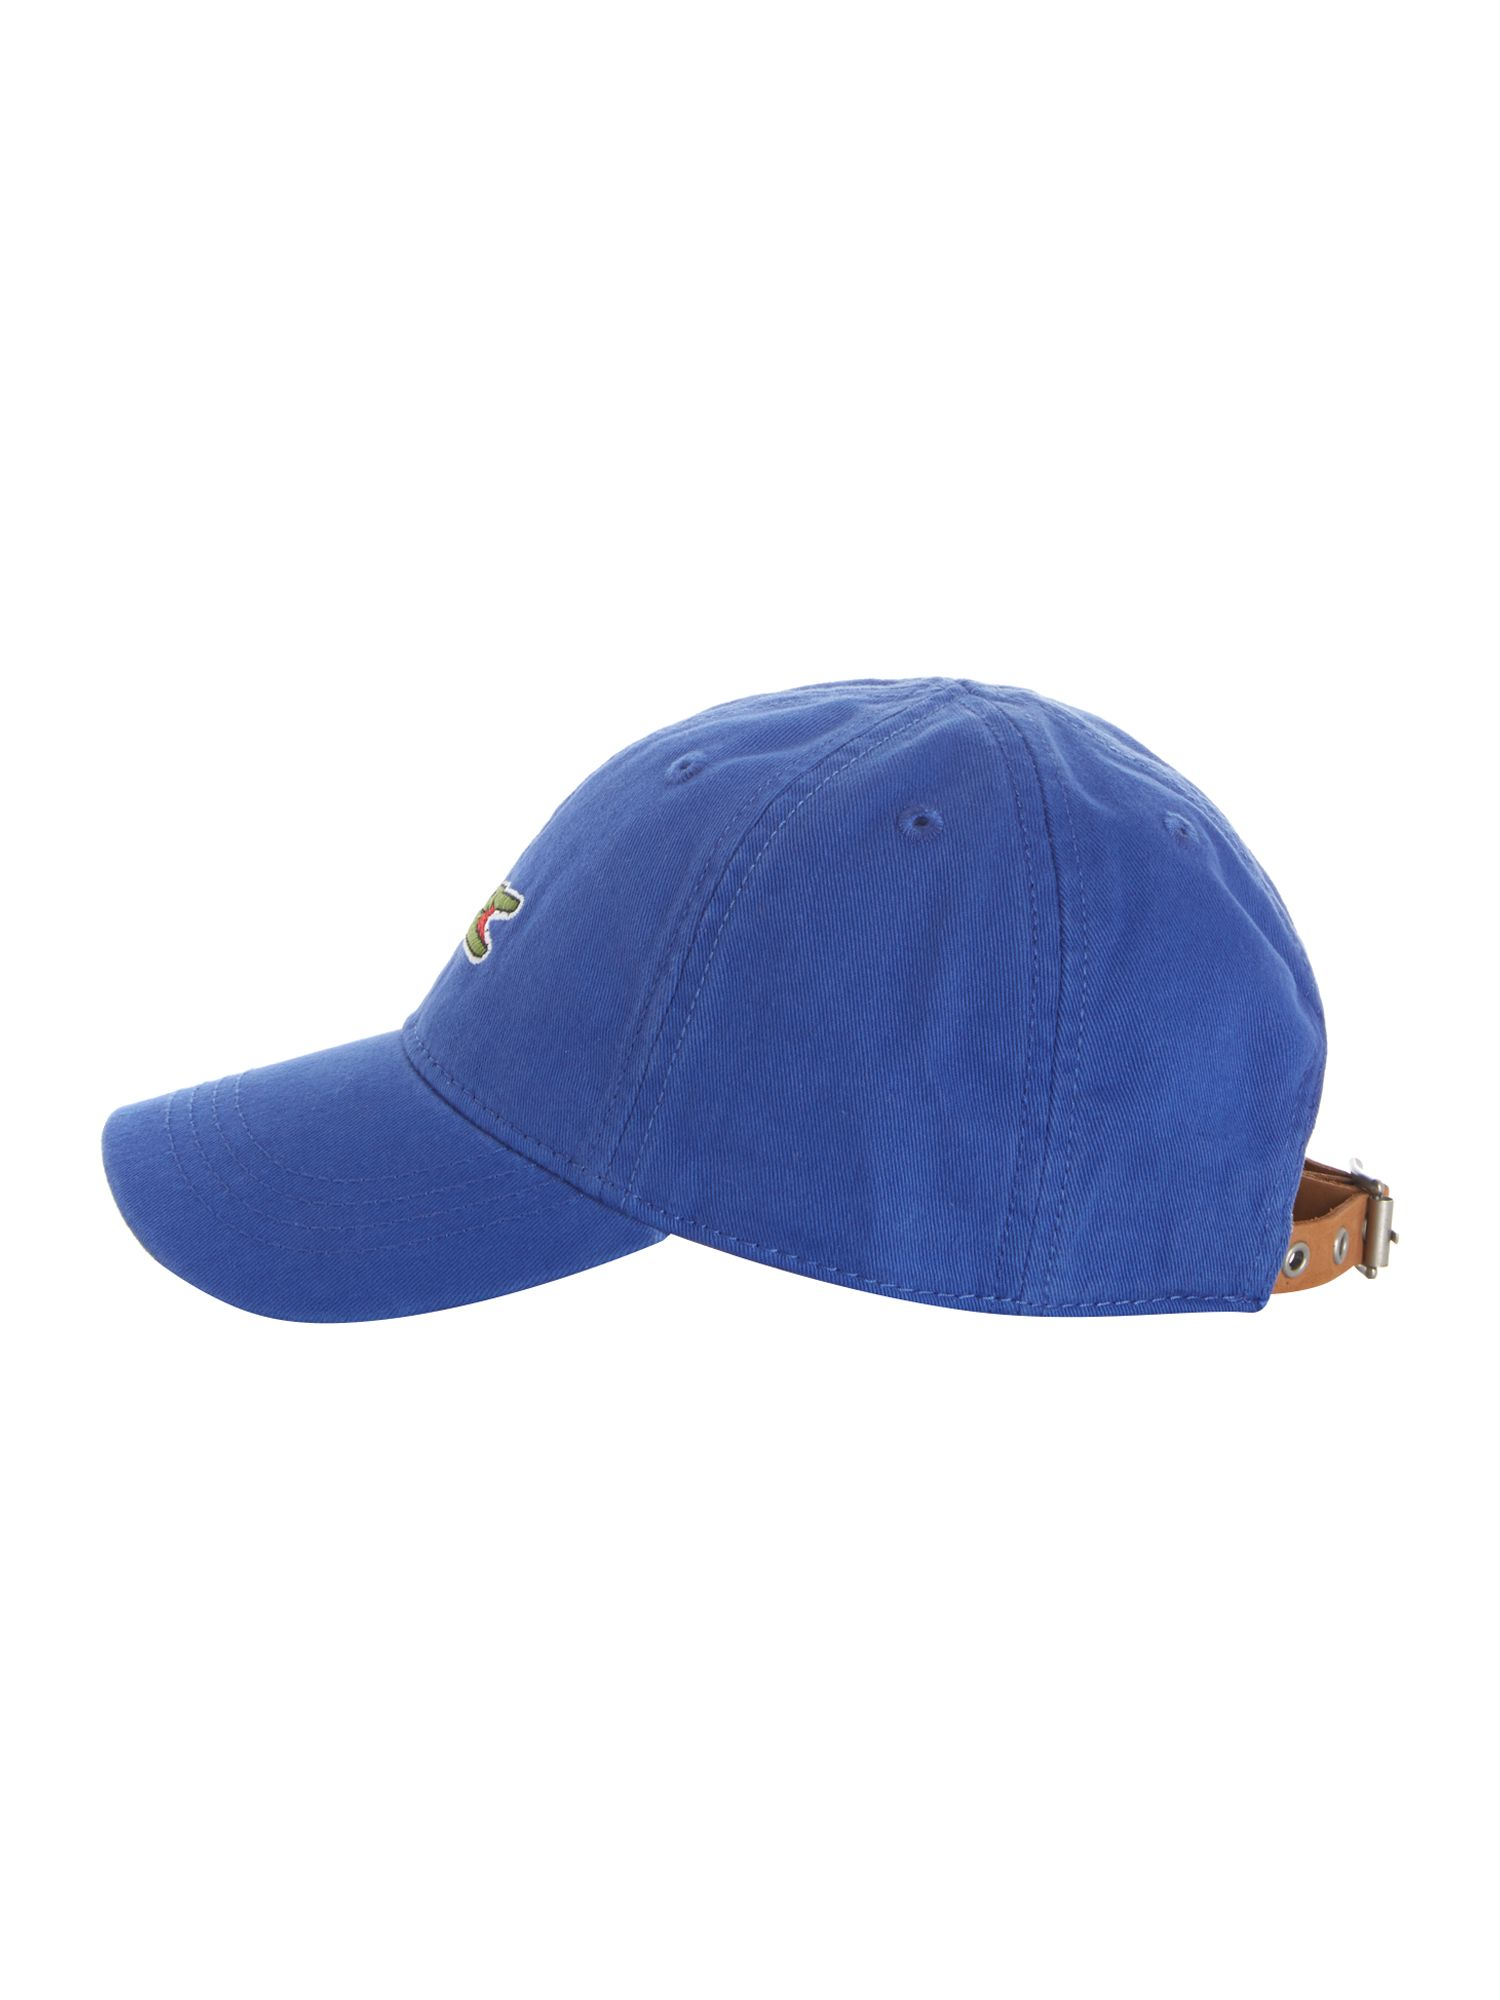 Boys large croc cap